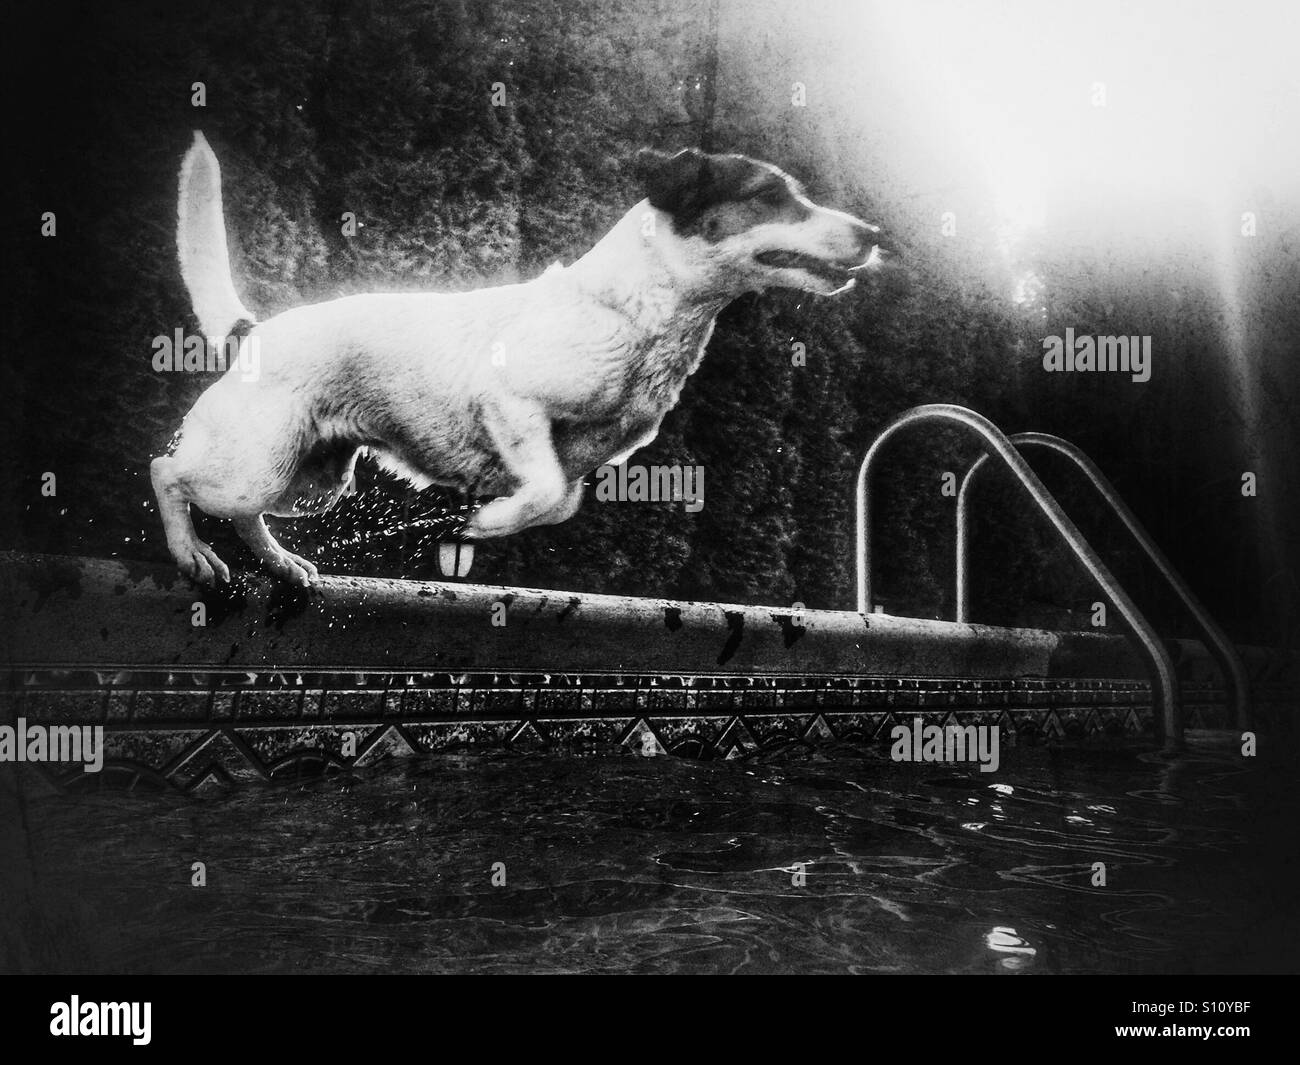 Wet dog jumping into a swimming pool. In black and white. - Stock Image